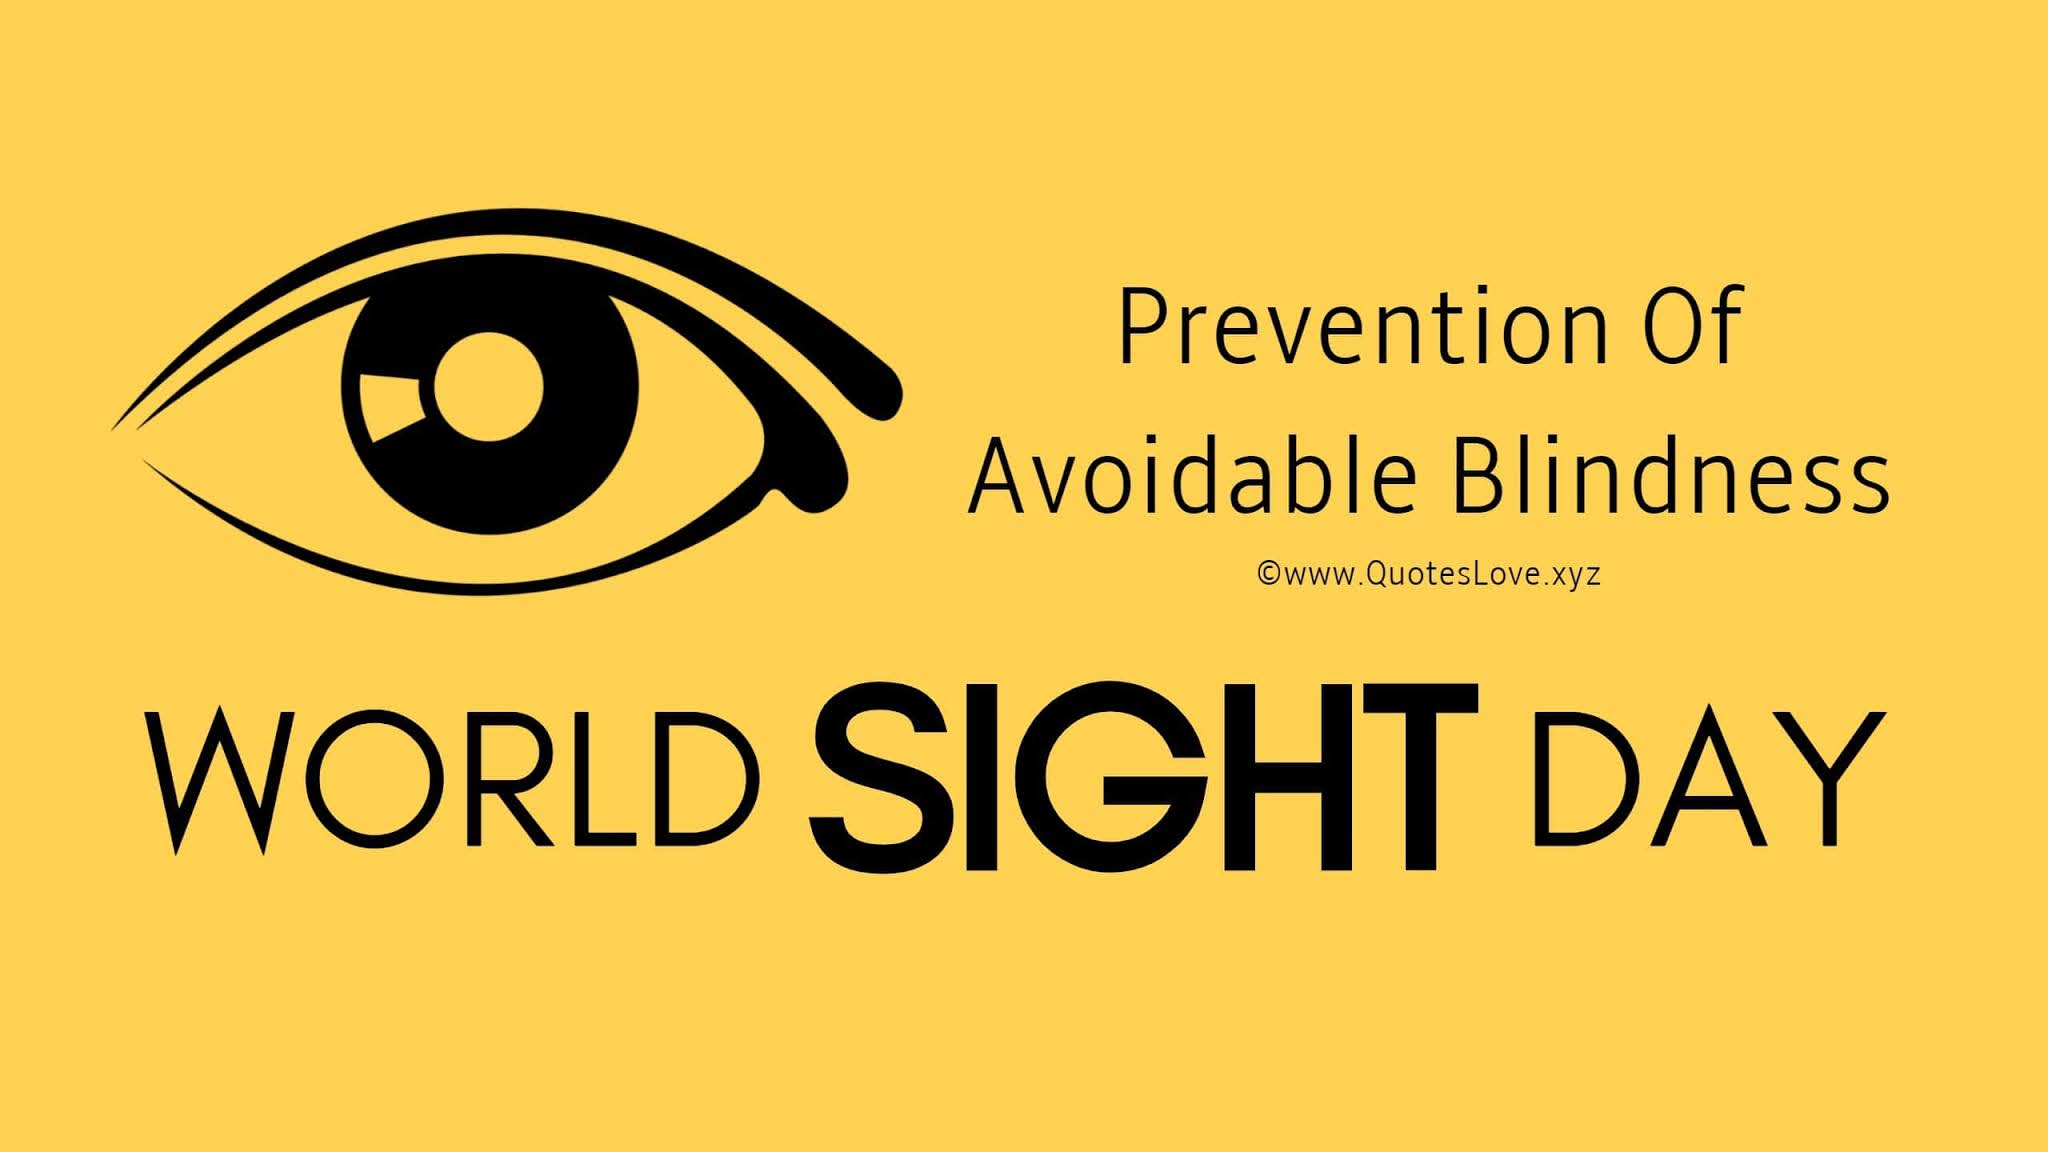 25+ [Best] World Sight Day 2021: Quotes, Wishes, Images, Poster, Pictures